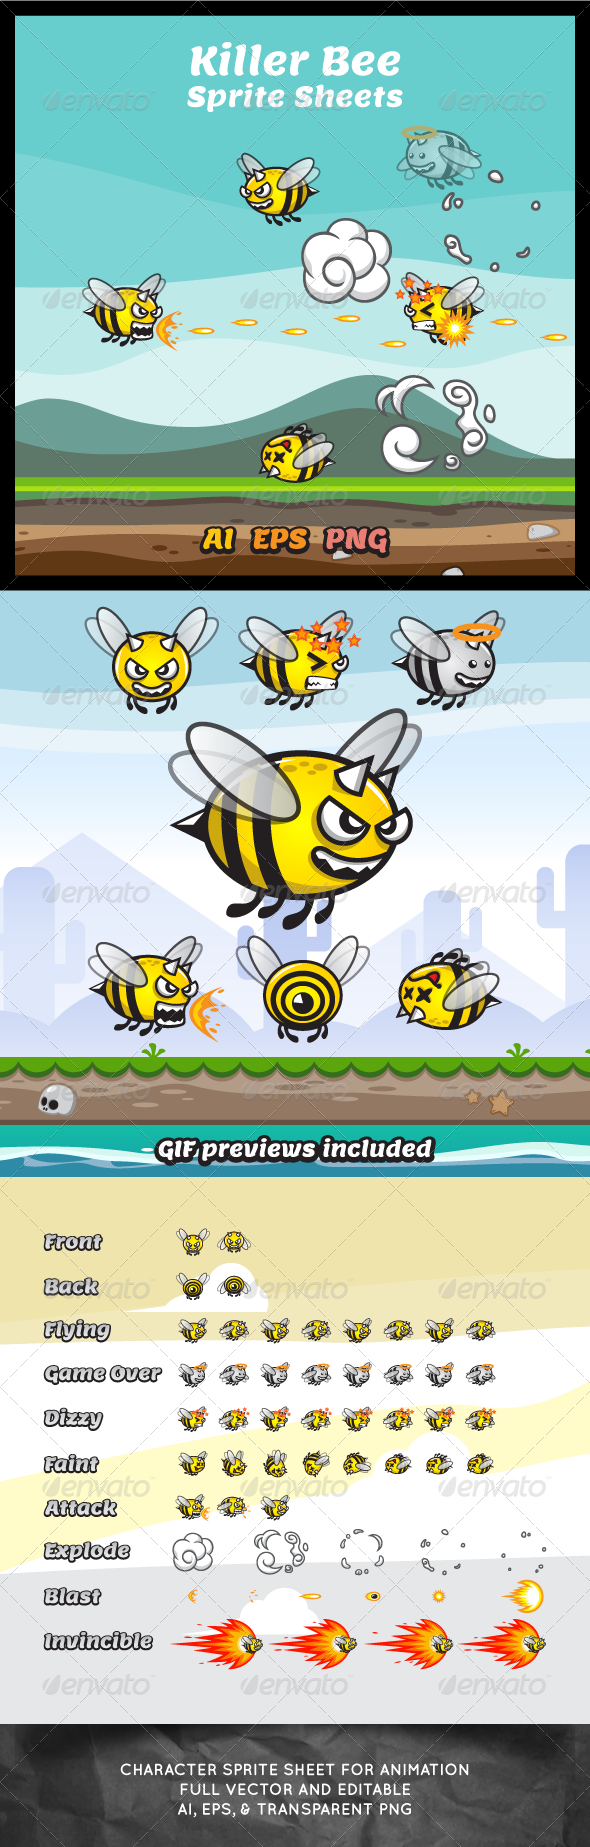 GraphicRiver Killer Bee Game Character Sprite Sheets 7793821